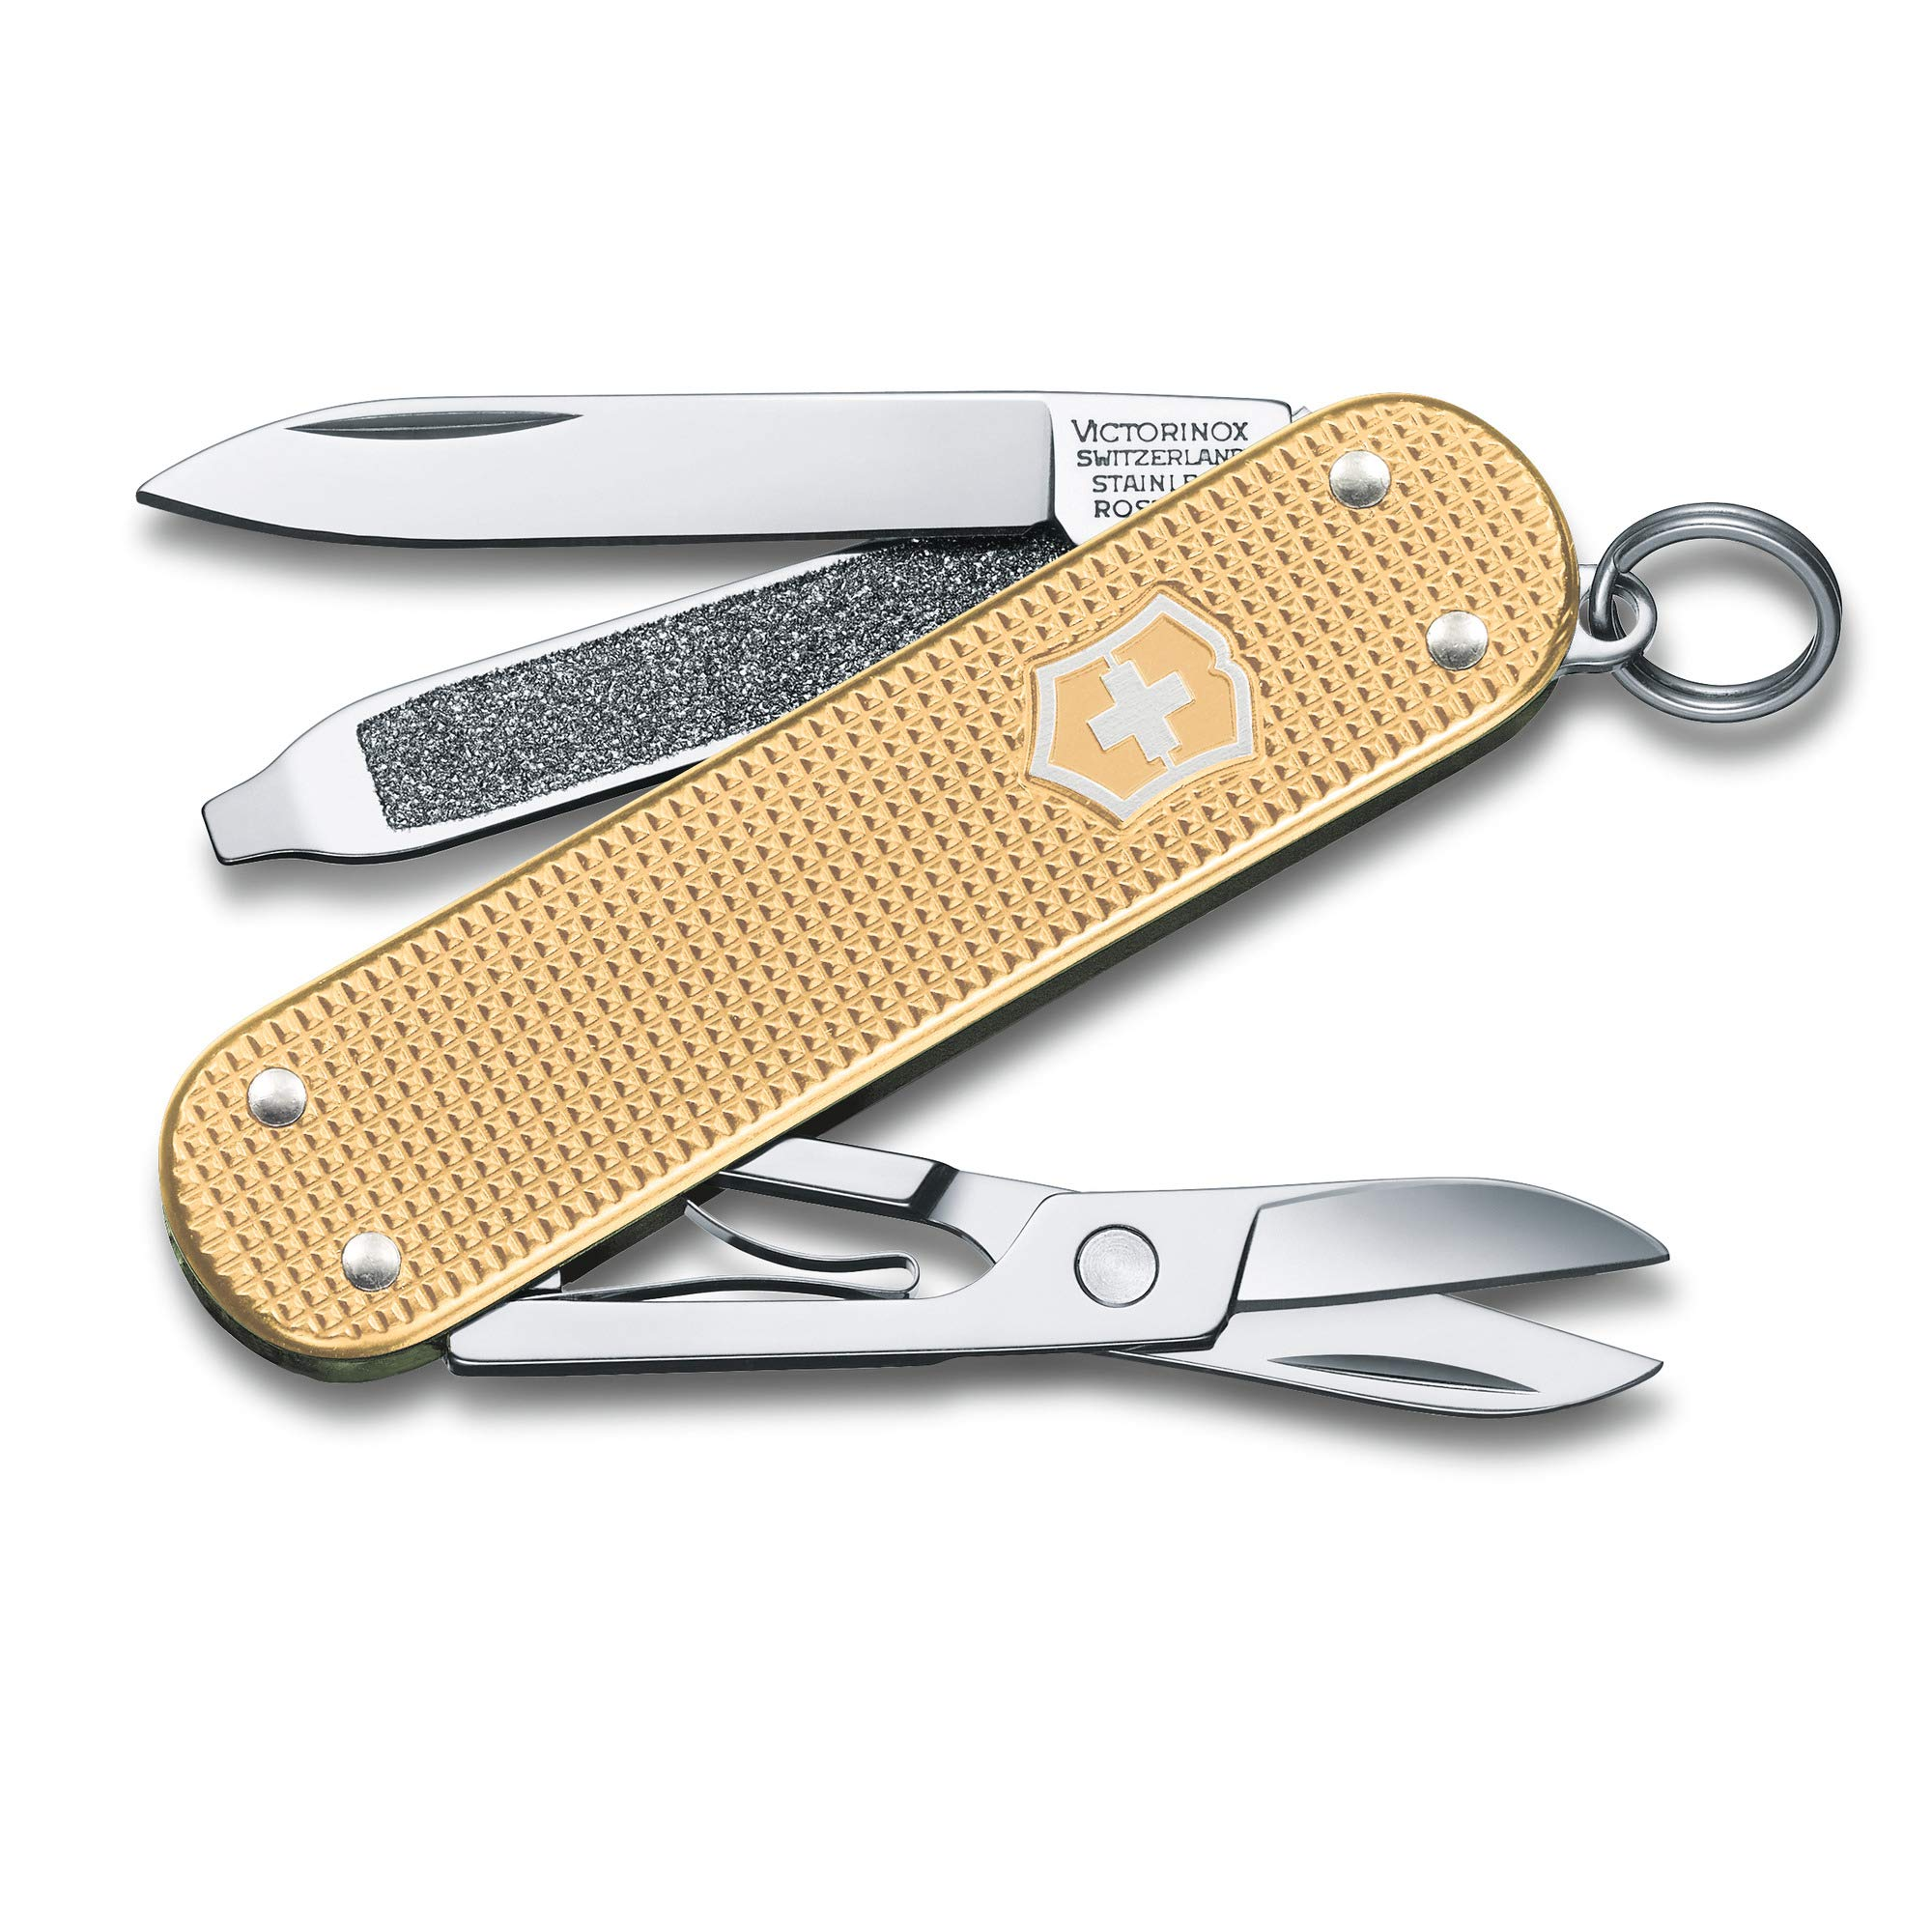 Victorinox Classic SD Champagne Gold Alox 2019 Limited Edition Swiss Army Knife